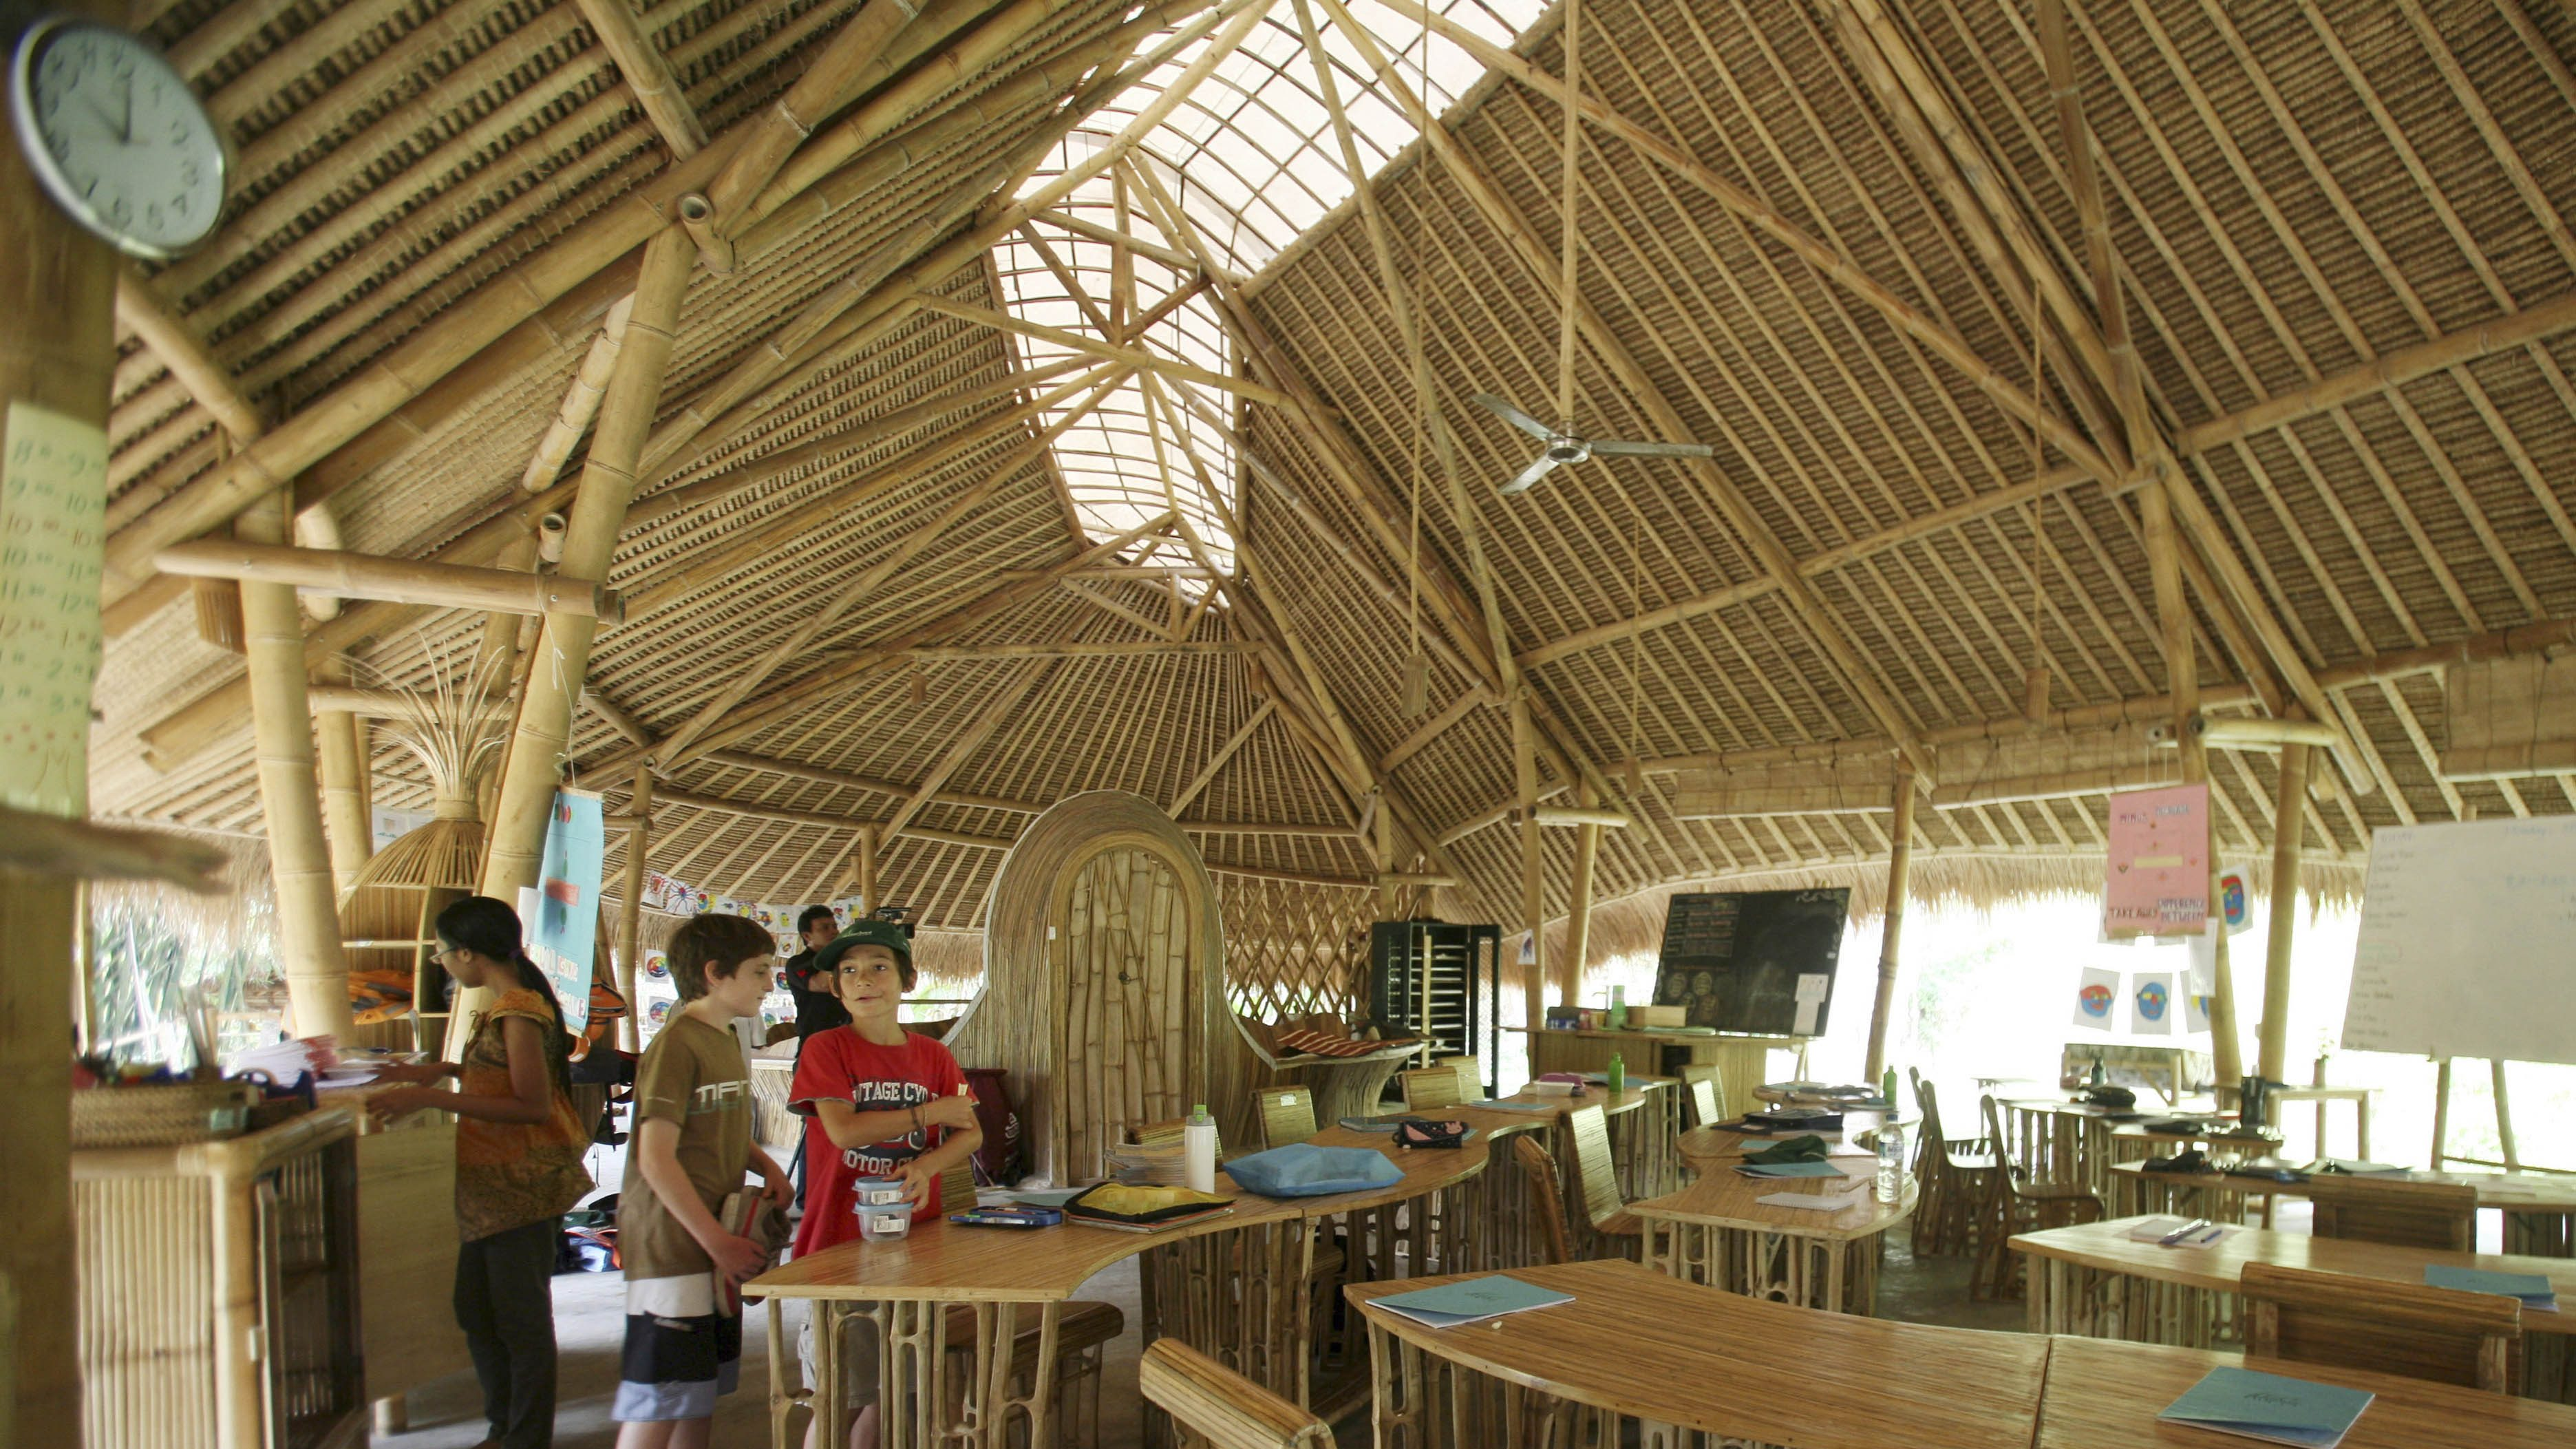 Bali's Green School is leading a renaissance of bamboo architecture